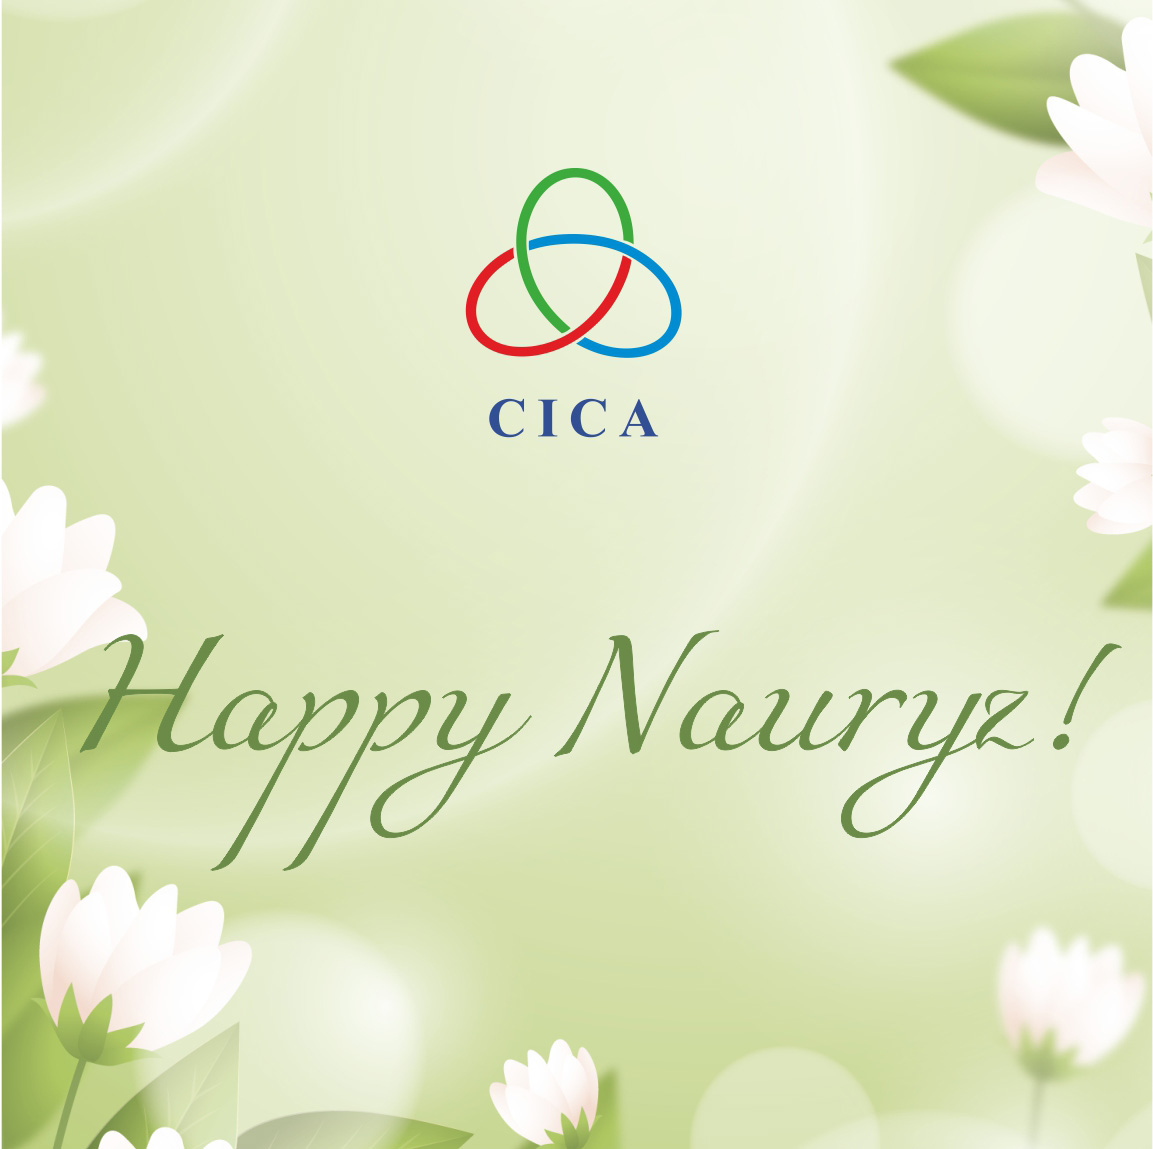 The CICA Secretariat expresses its warmest congratulations on the occasion of Nauryz!